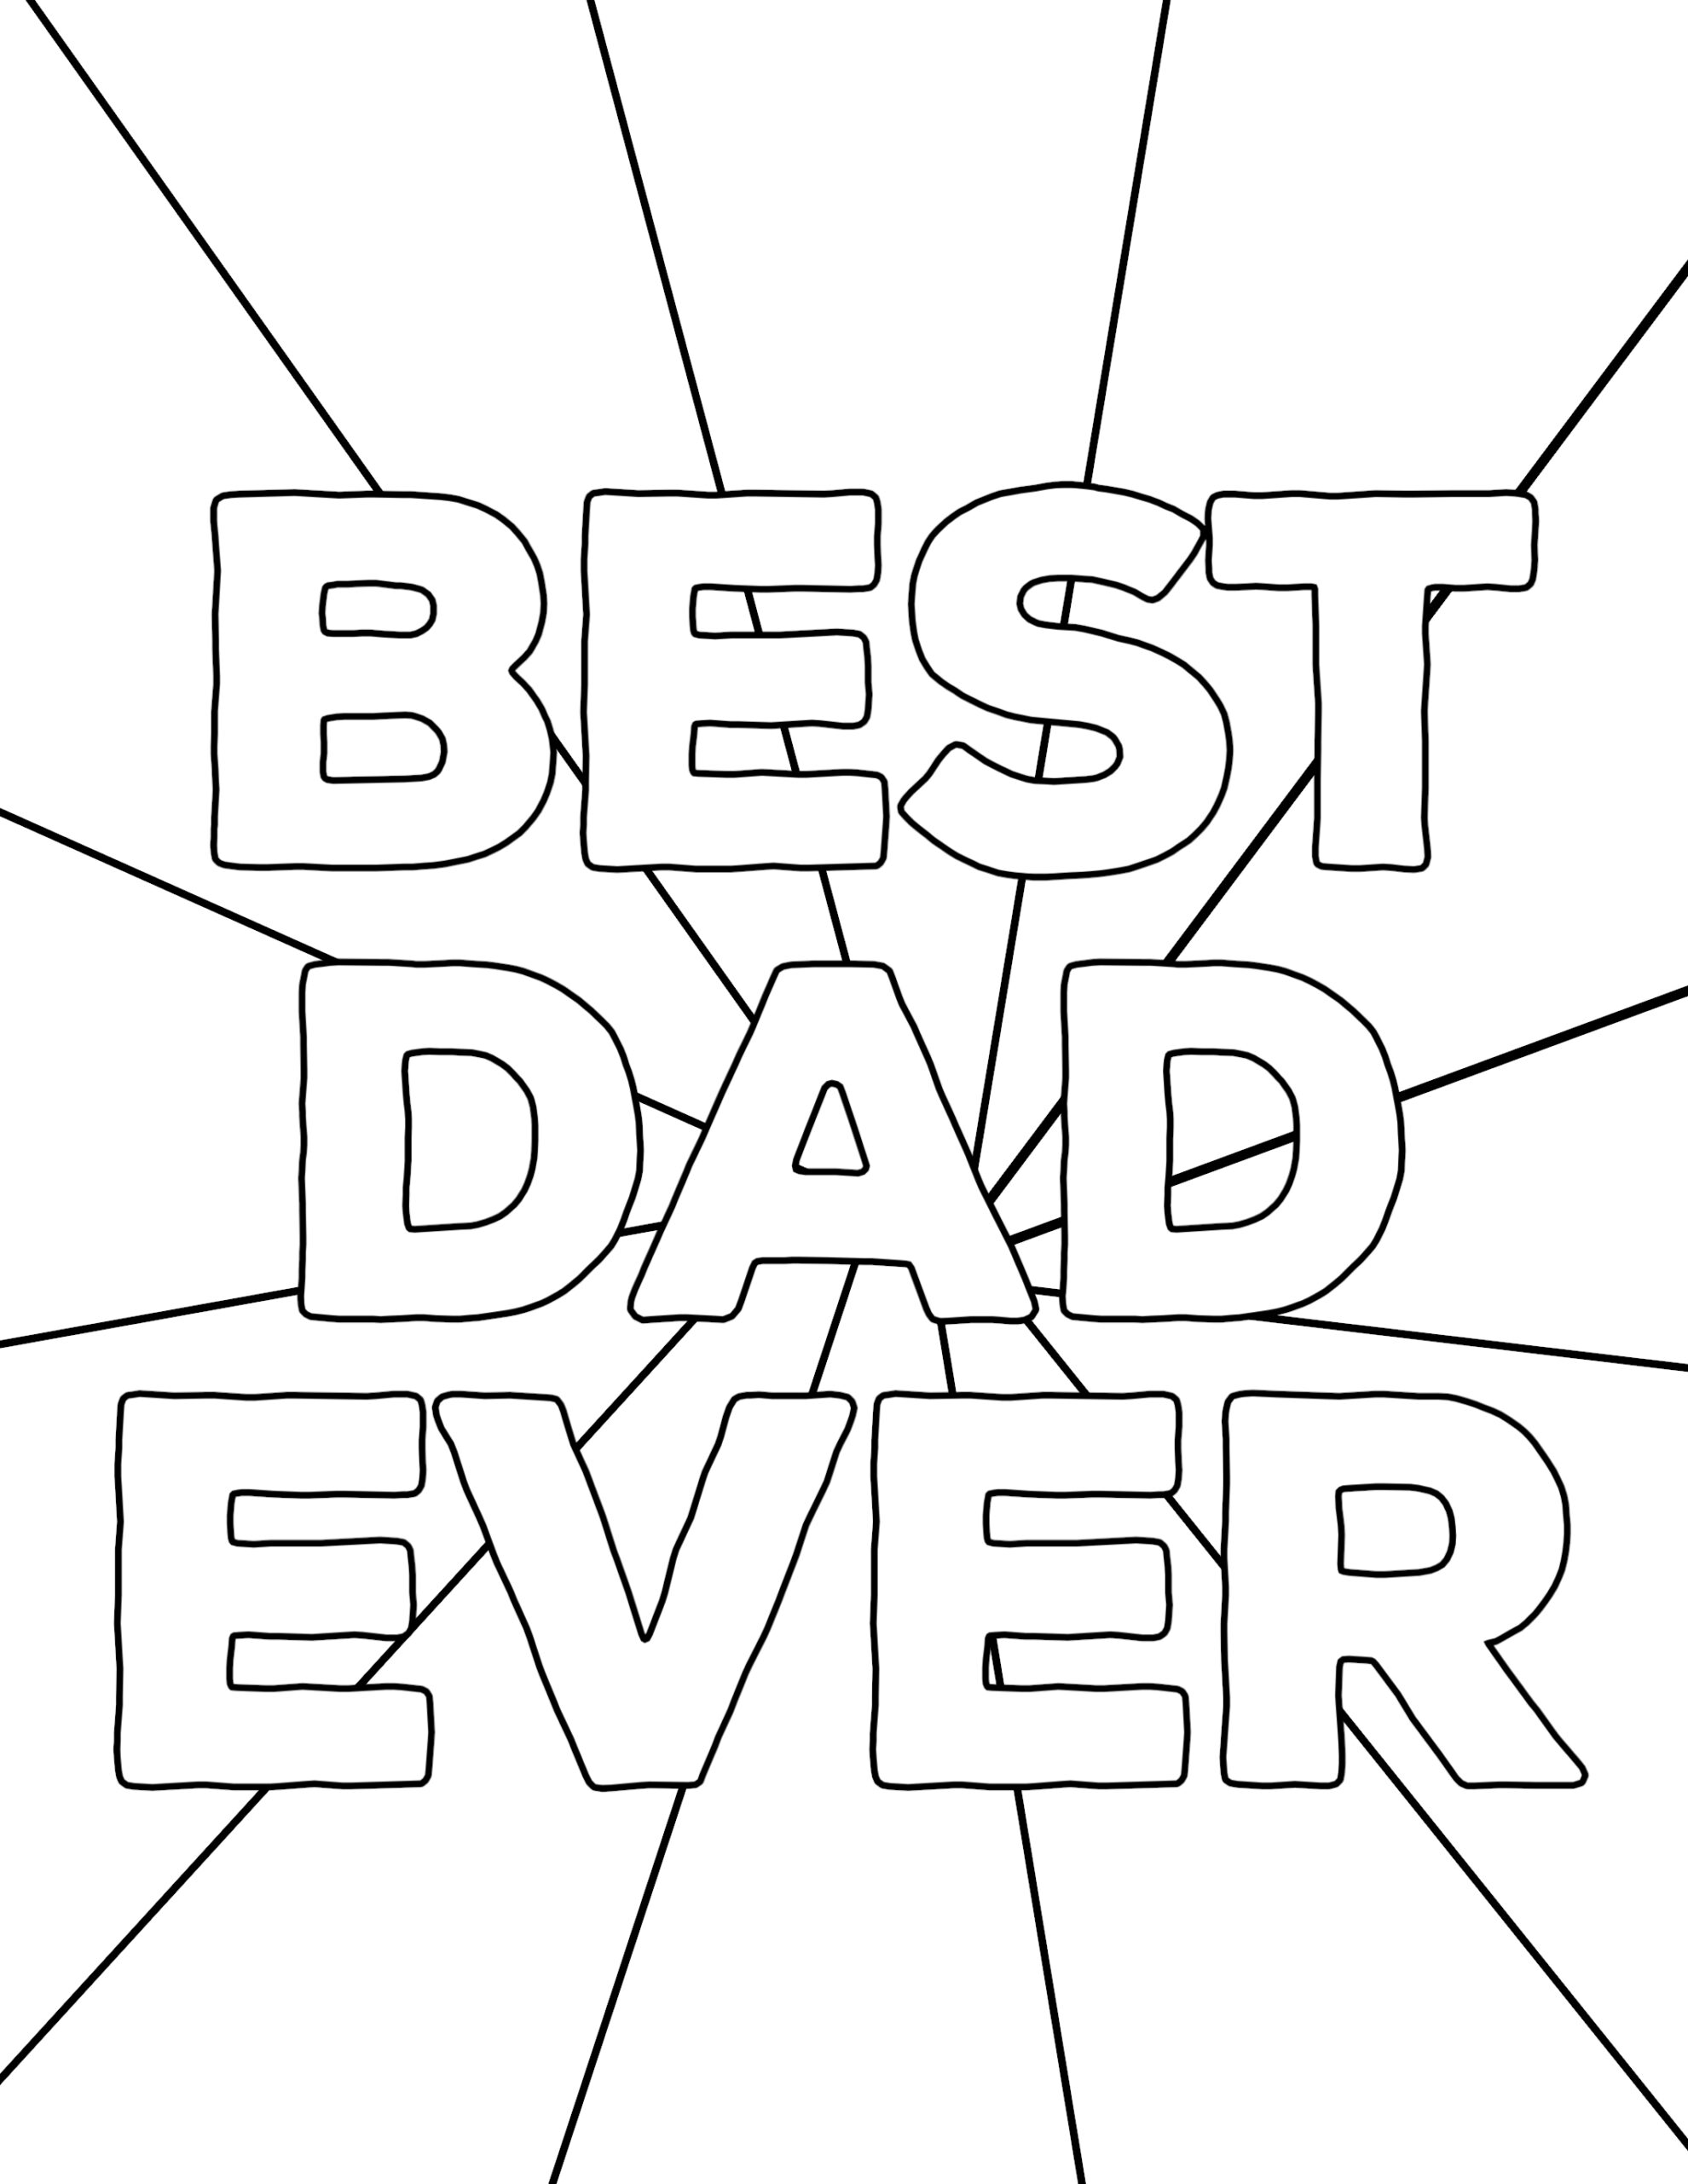 fathers day coloring sheets get this happy father39s day coloring pages to print wa784 sheets fathers coloring day